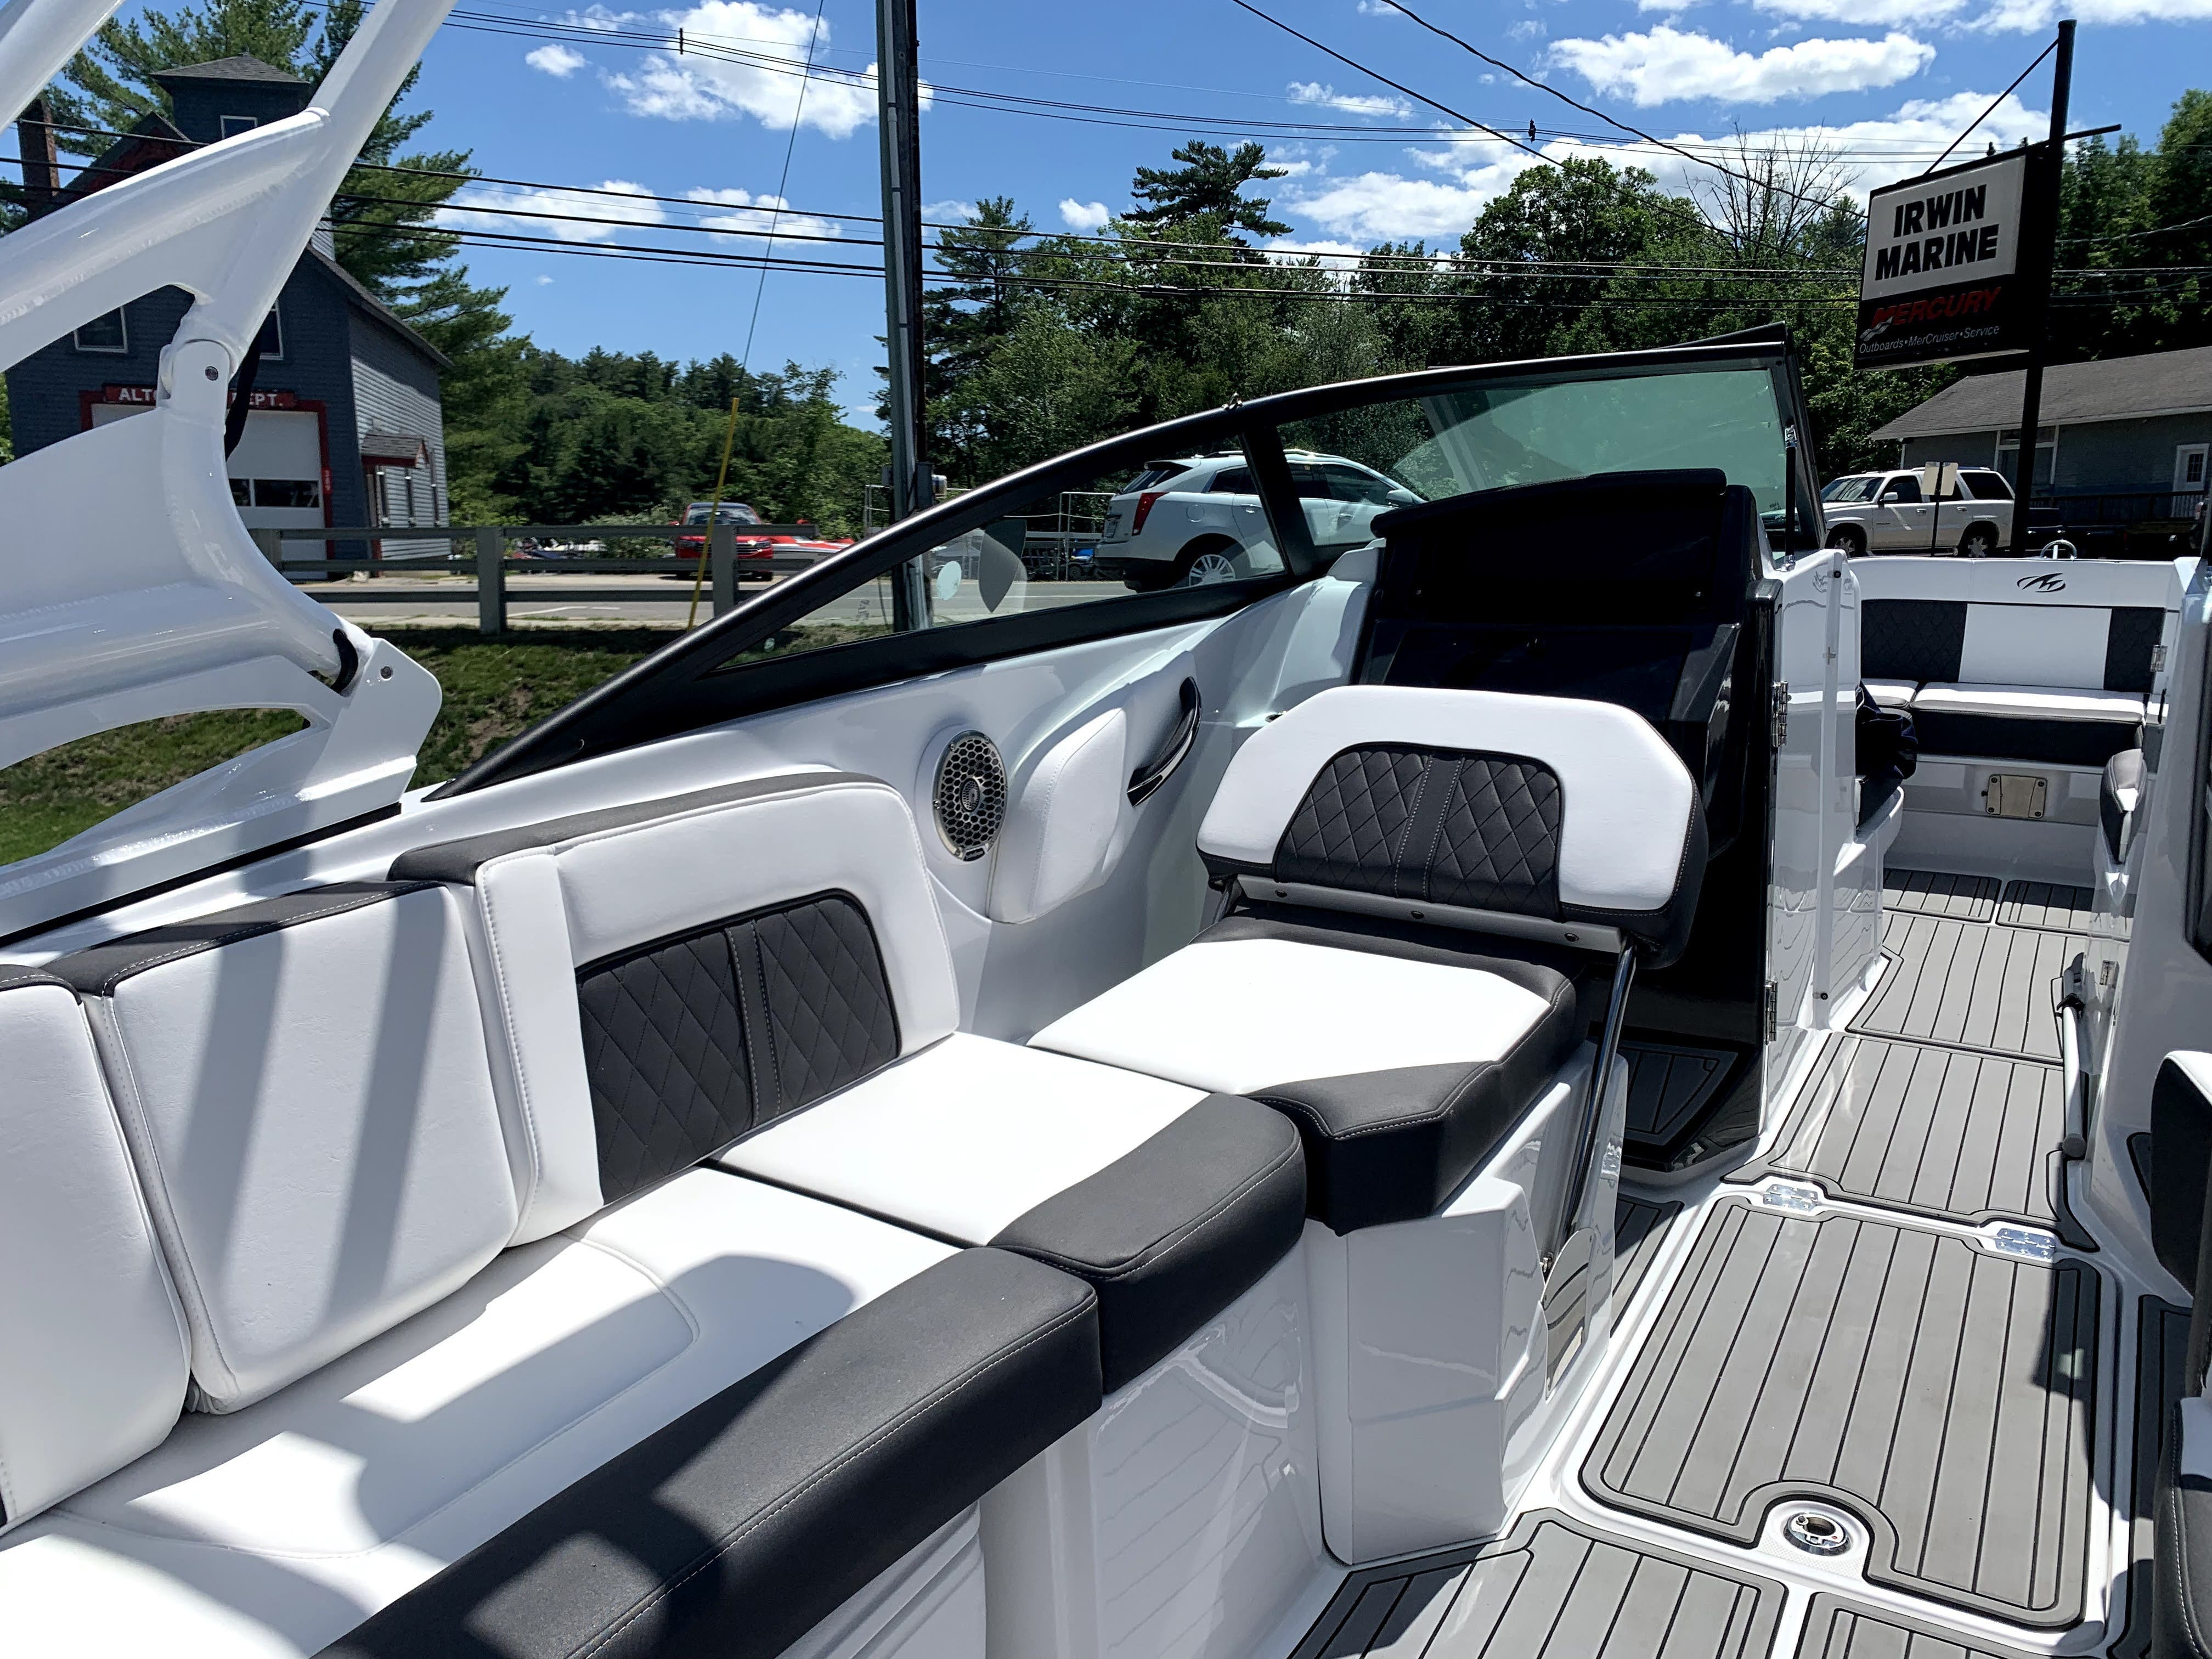 2021 Monterey boat for sale, model of the boat is M65 & Image # 7 of 12